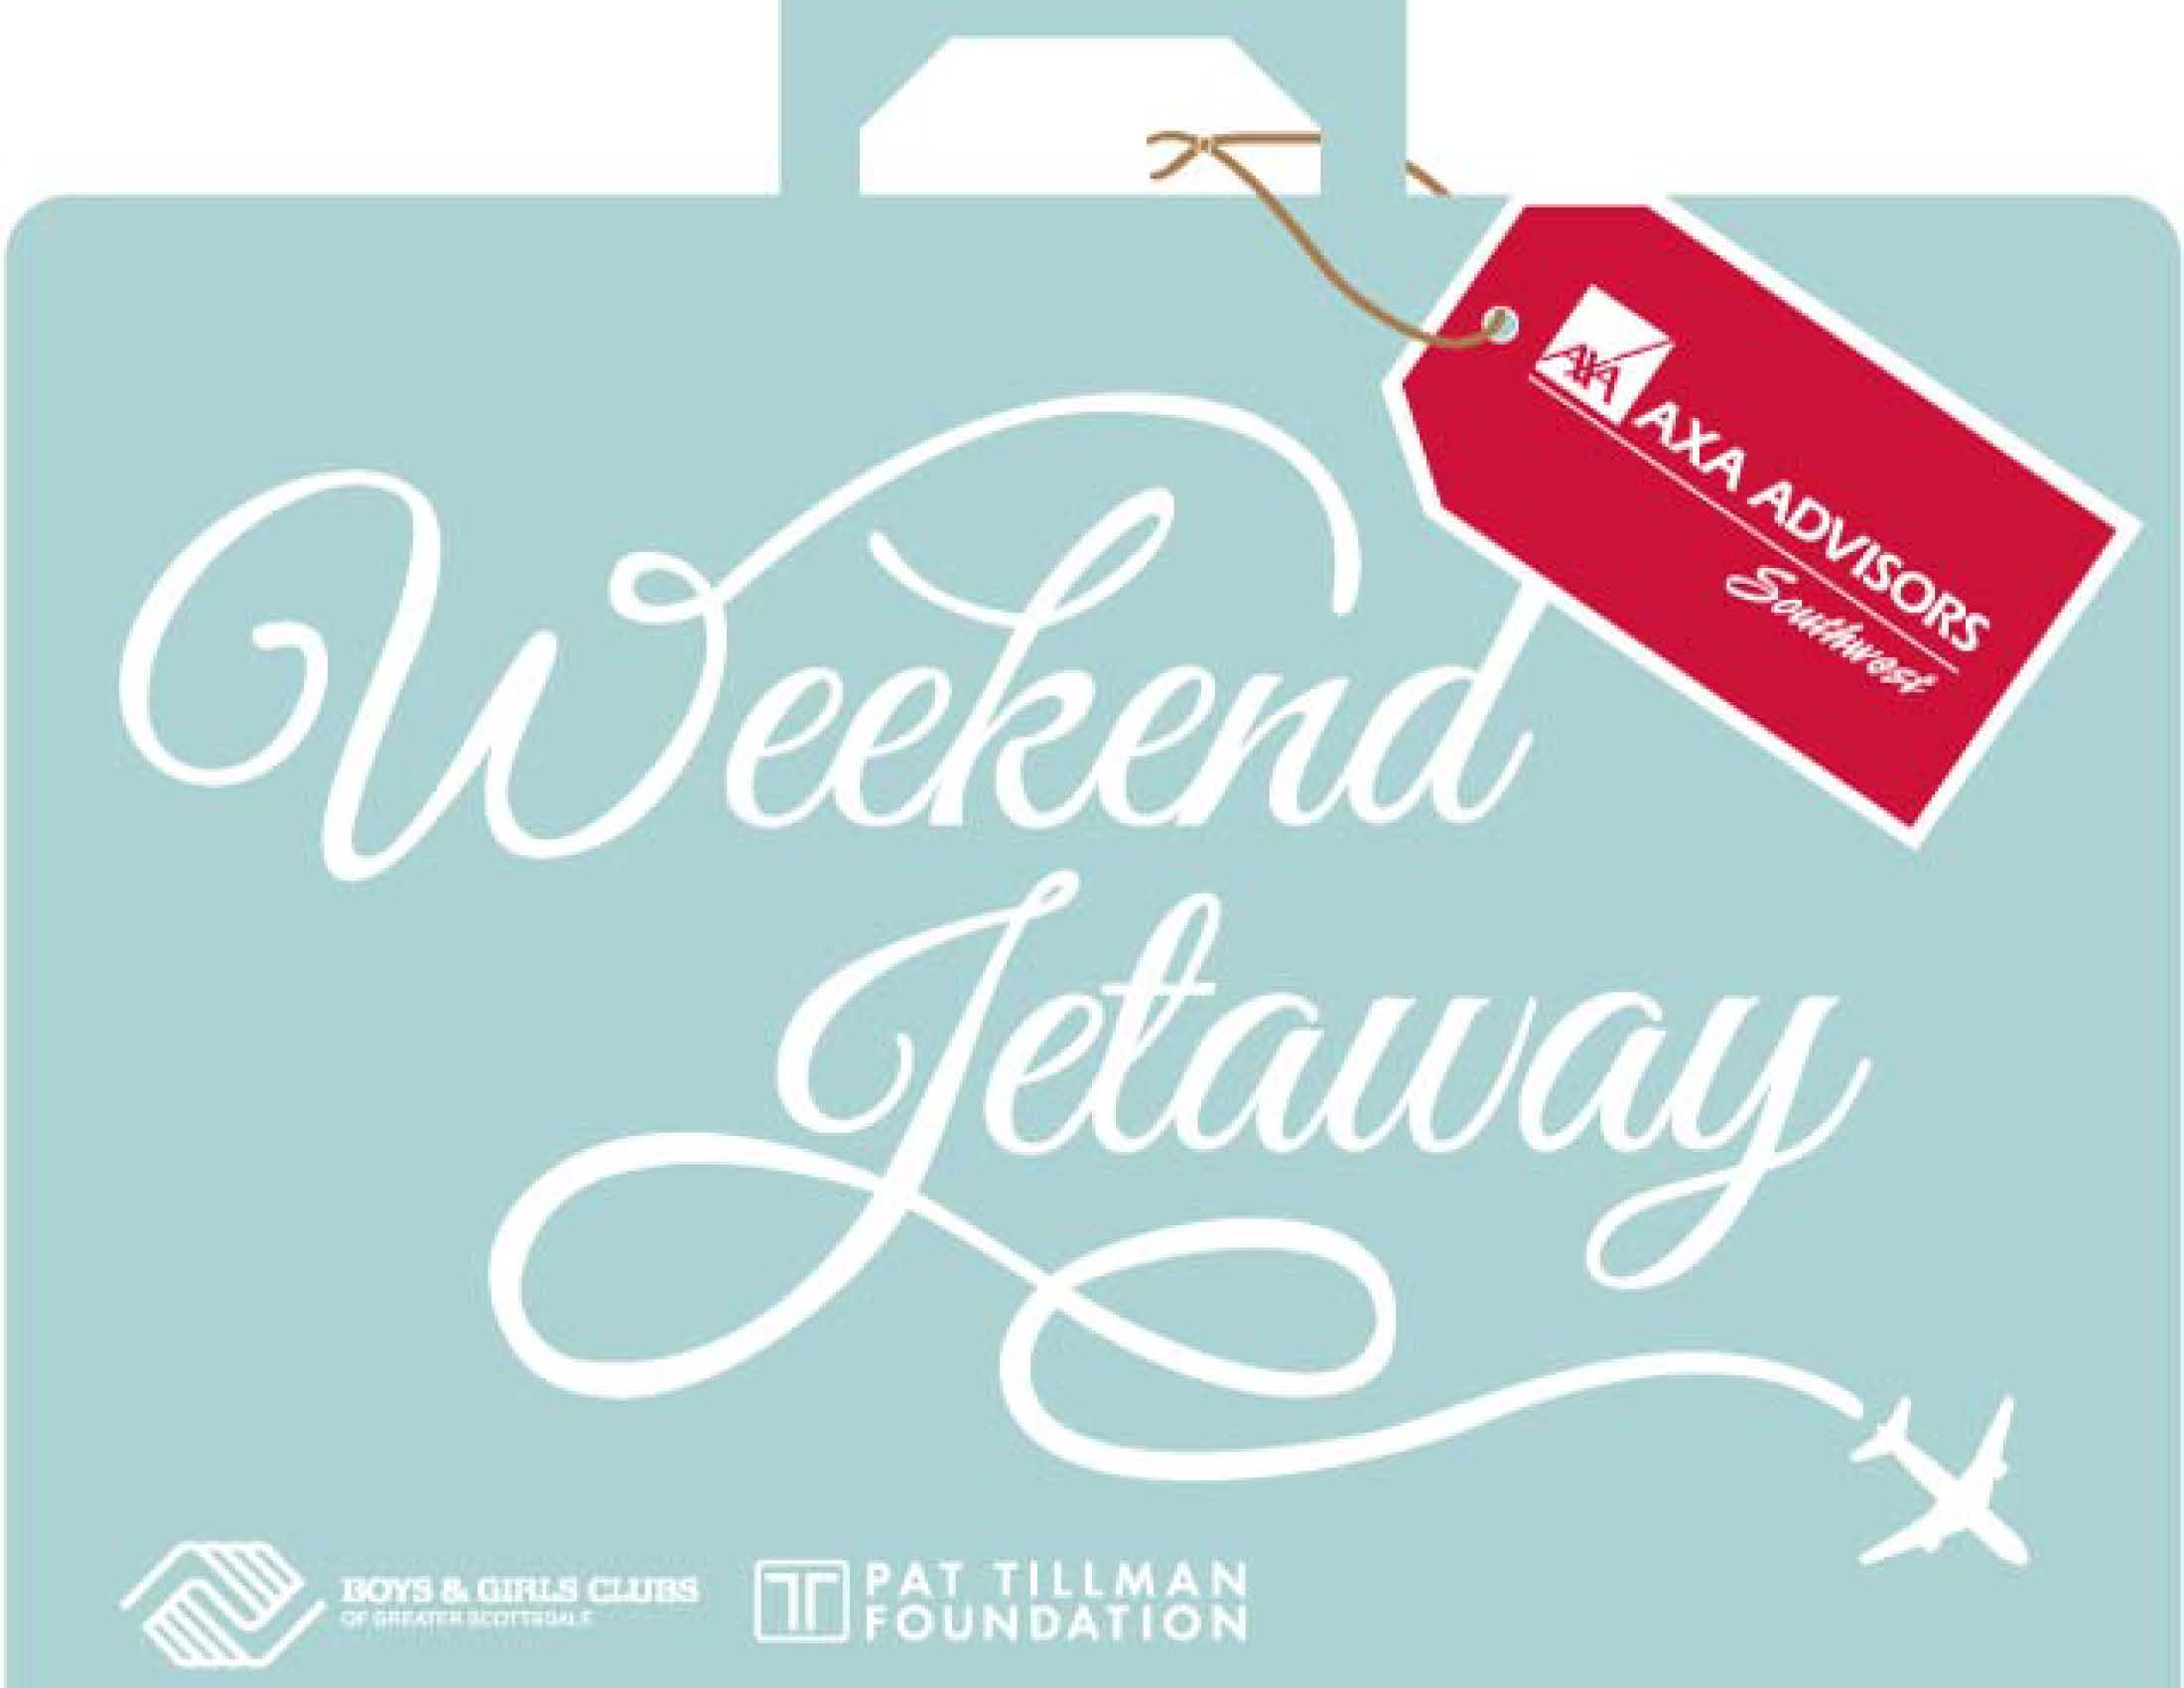 Jetaway event to Benefit Boys & Girls Clubs of Greater Scottsdale, Pat Tillman Foundation.